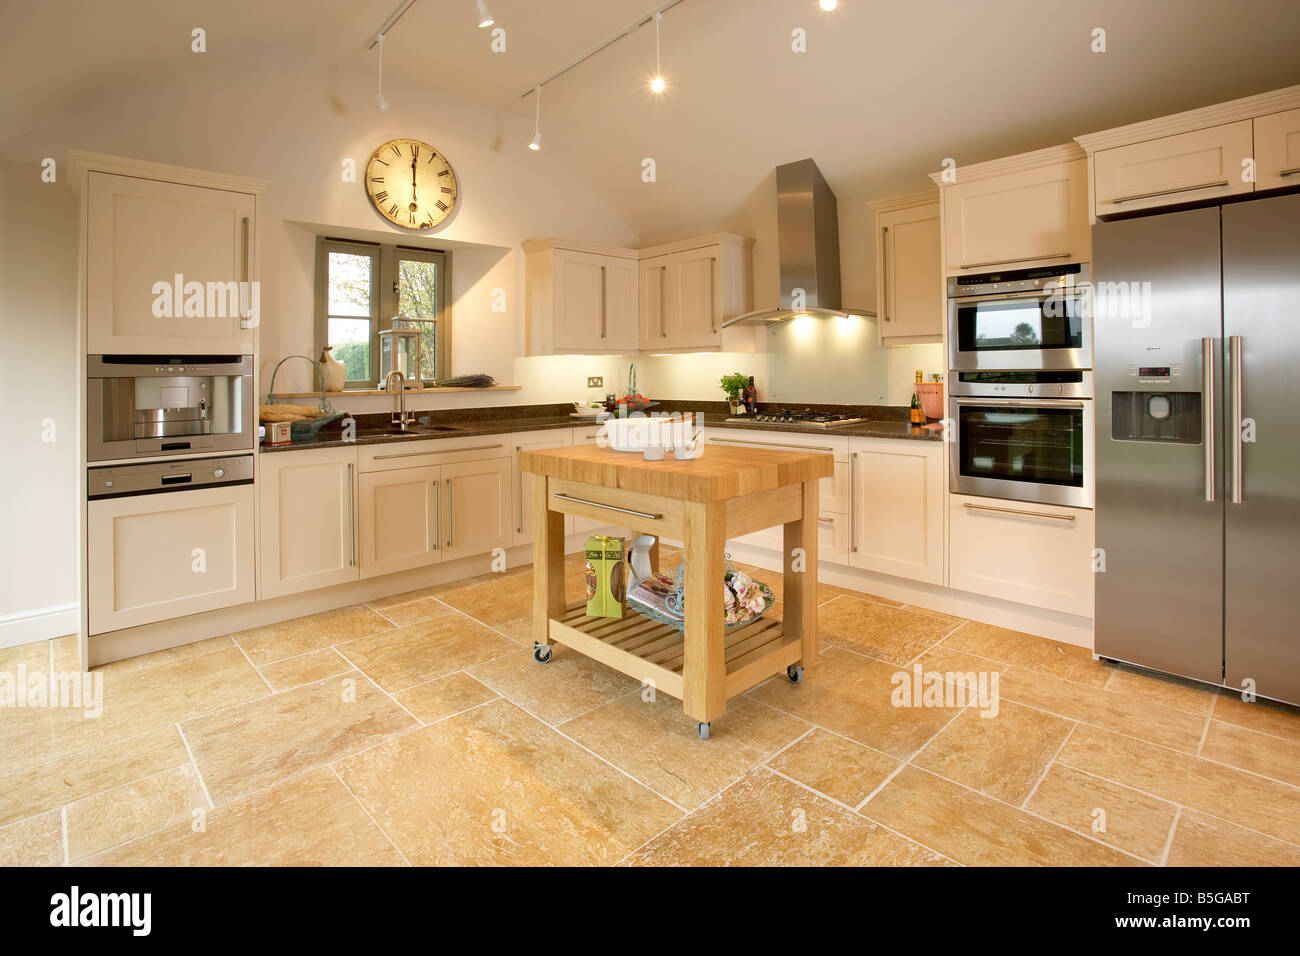 Limestone Flooring Kitchen Limestone Floor Stock Photos Limestone Floor Stock Images Alamy